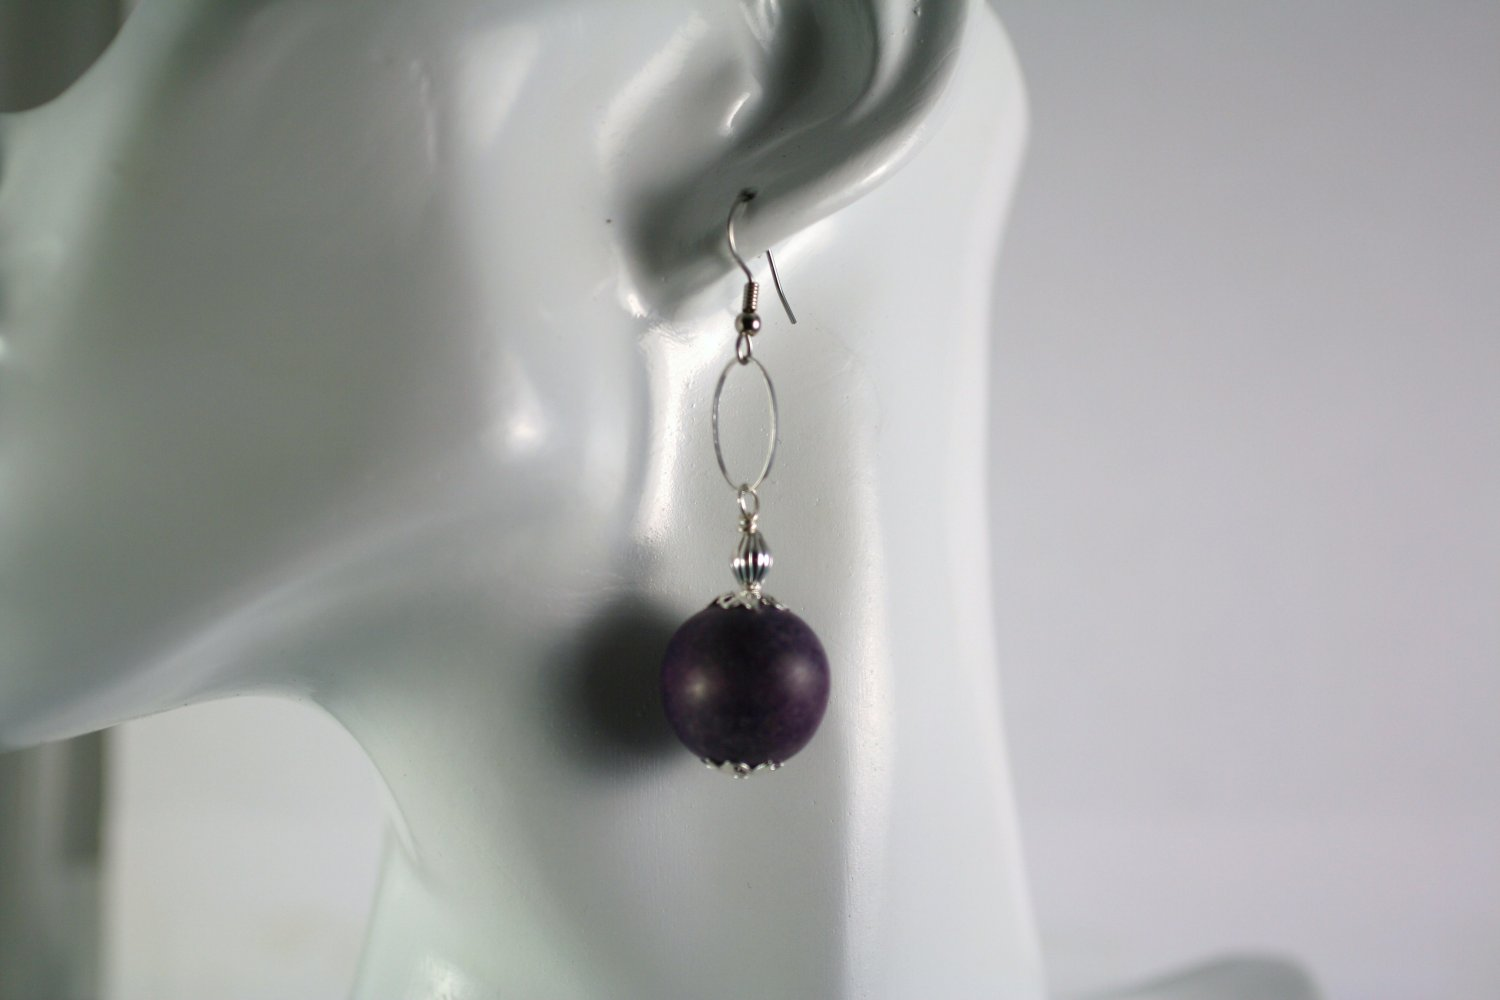 Silver and Purple Vintage Wood Beads Drop Earrings Handcrafted Jewelry